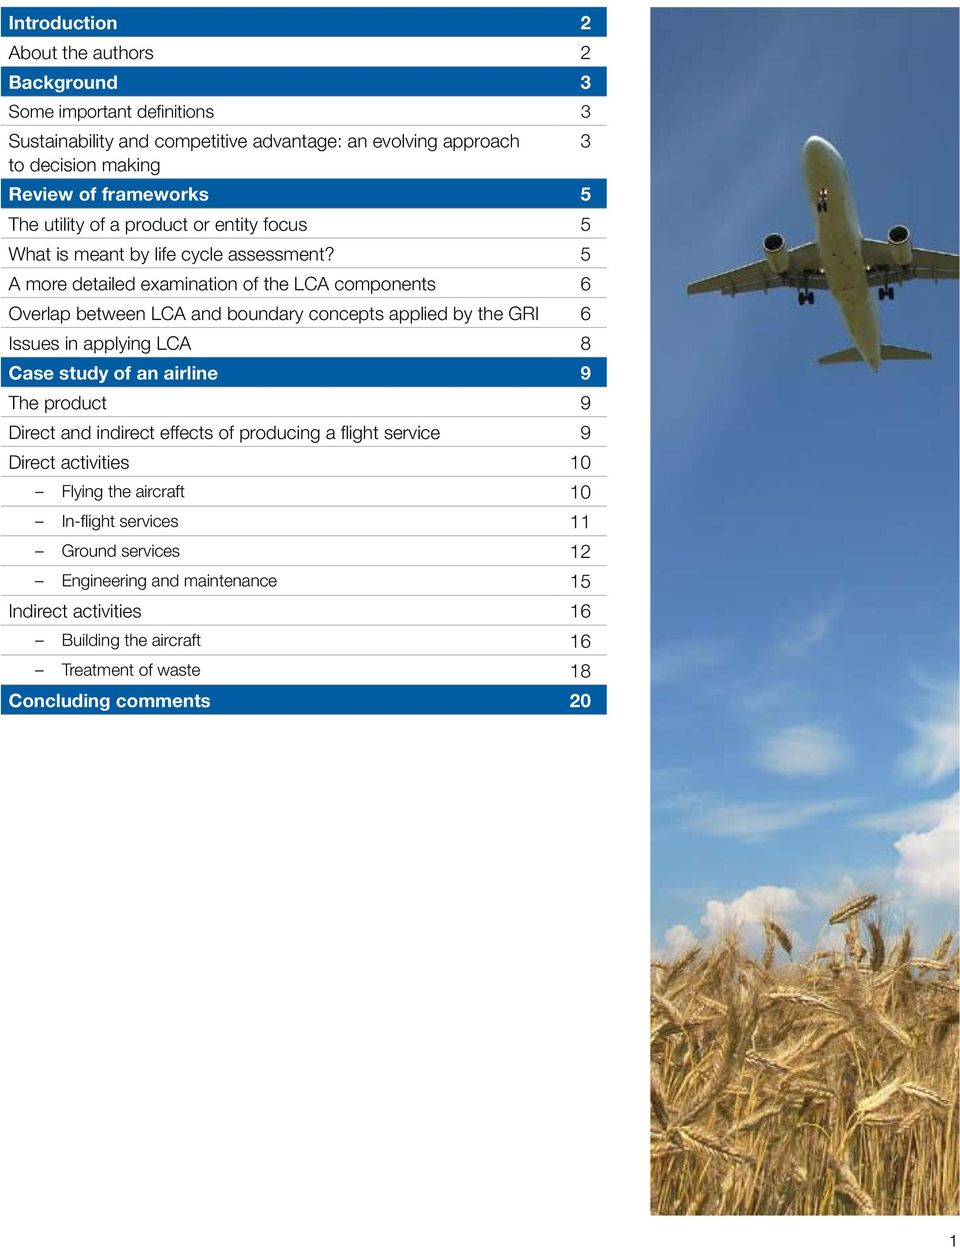 5 A more detailed examination of the LCA components 6 Overlap between LCA and boundary concepts applied by the GRI 6 Issues in applying LCA 8 Case study of an airline 9 The